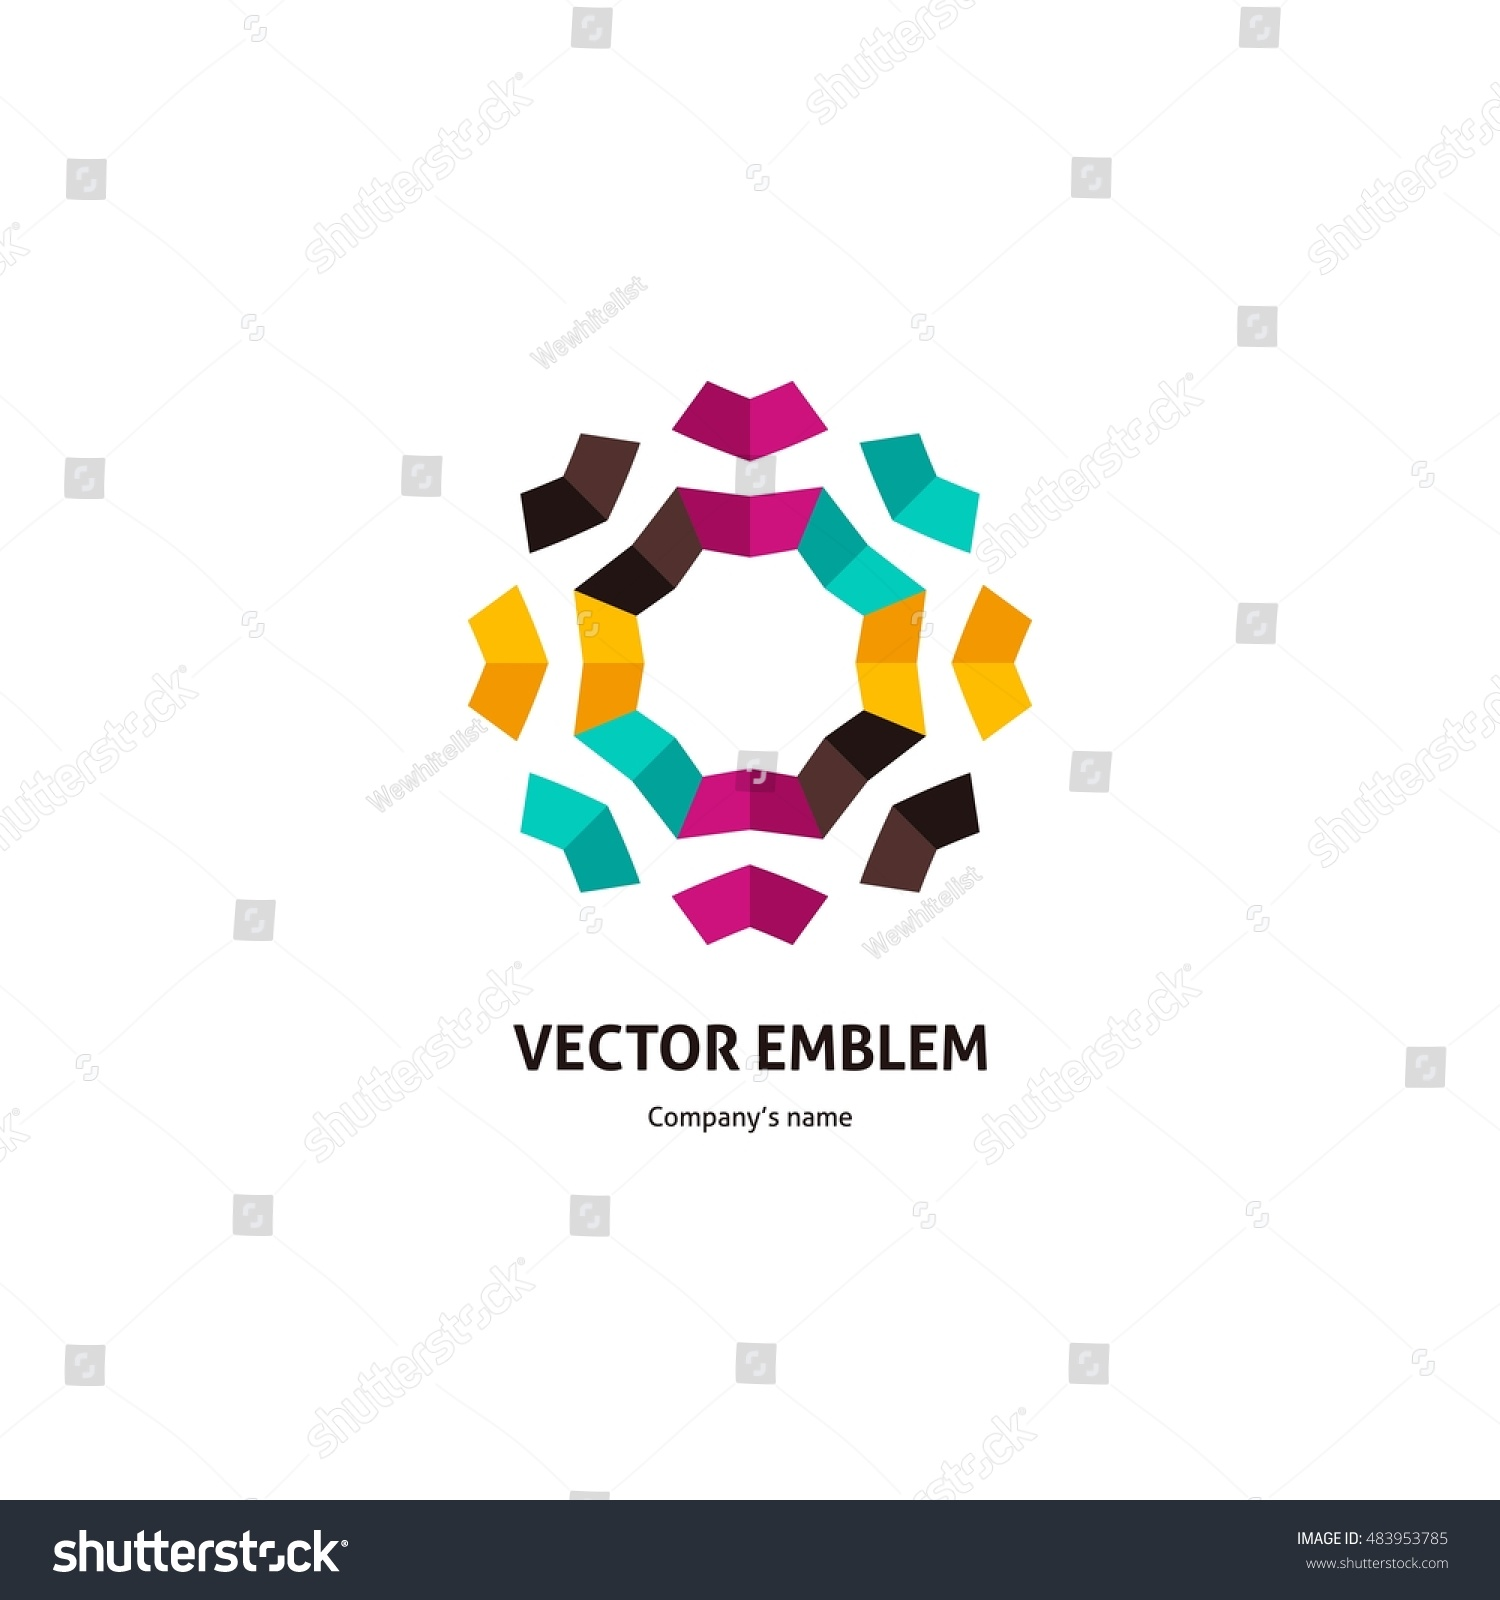 emblem big and beautiful singles Meet singles with similar interests compatible interests introduce you to big and beautiful singles that share your passion.